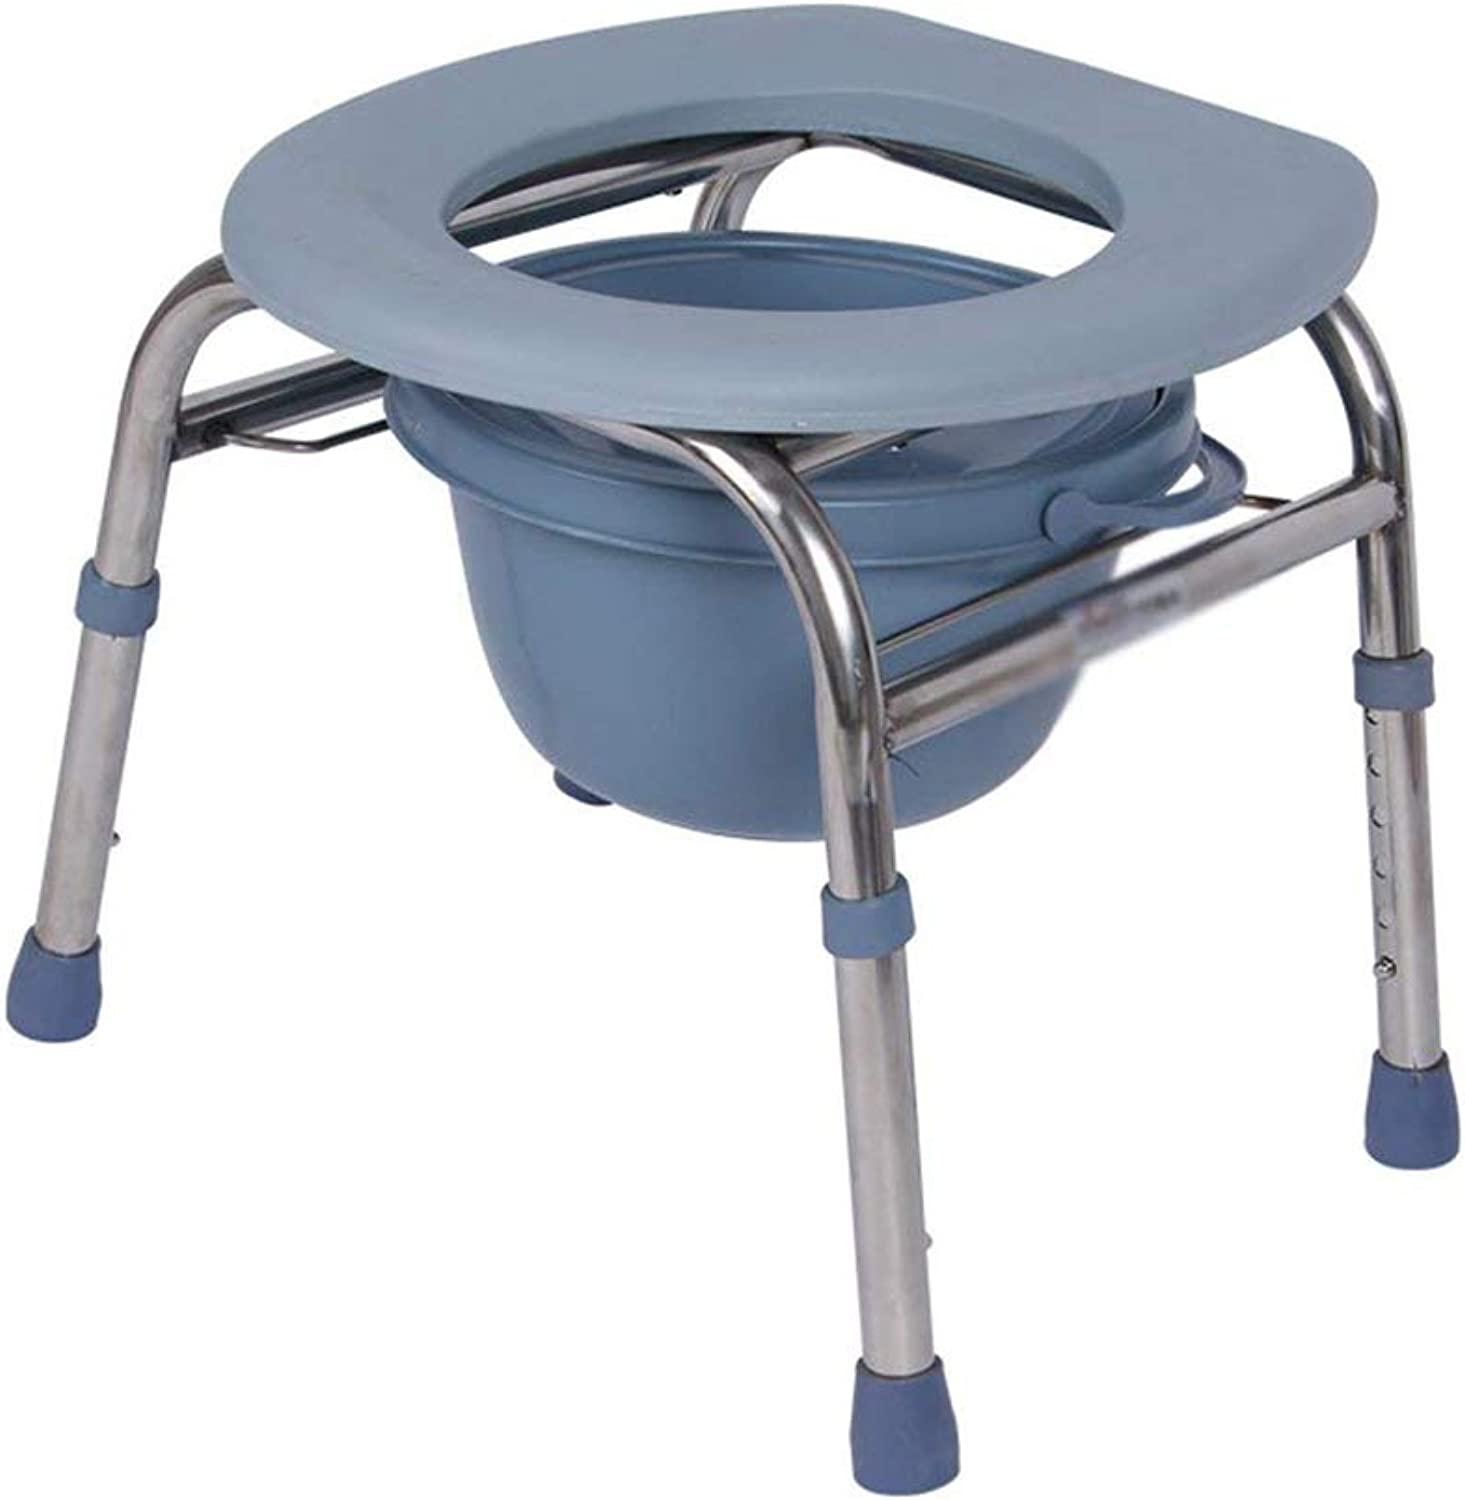 Adjustable Stainless Steel Elderly Pregnant Women Adult Disabled Bathroom Toilet Stool Chair (32-47Cm)